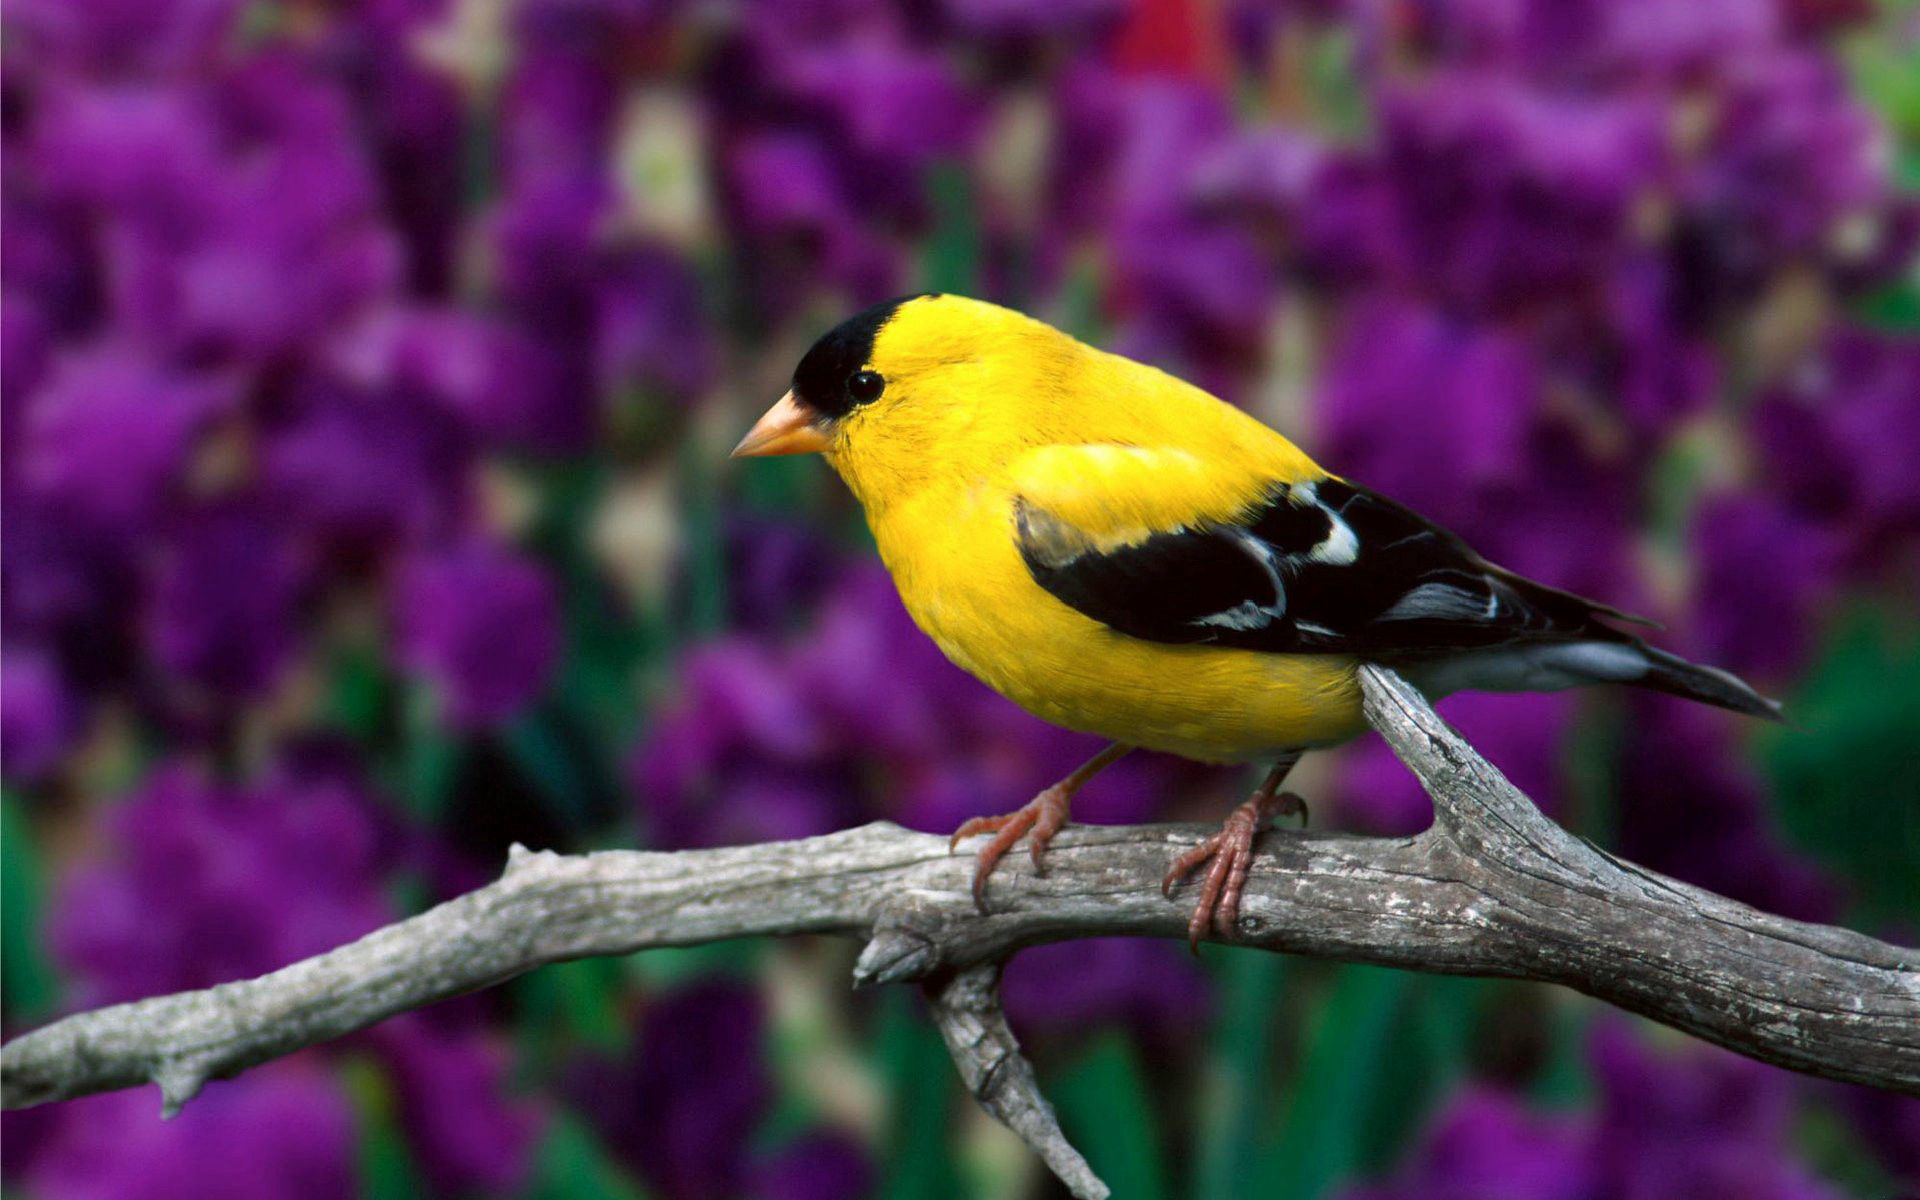 56217 download wallpaper Animals, American Goldfinch, American Flaunt, Bird, Branch, Leaves, Color, Flowers screensavers and pictures for free